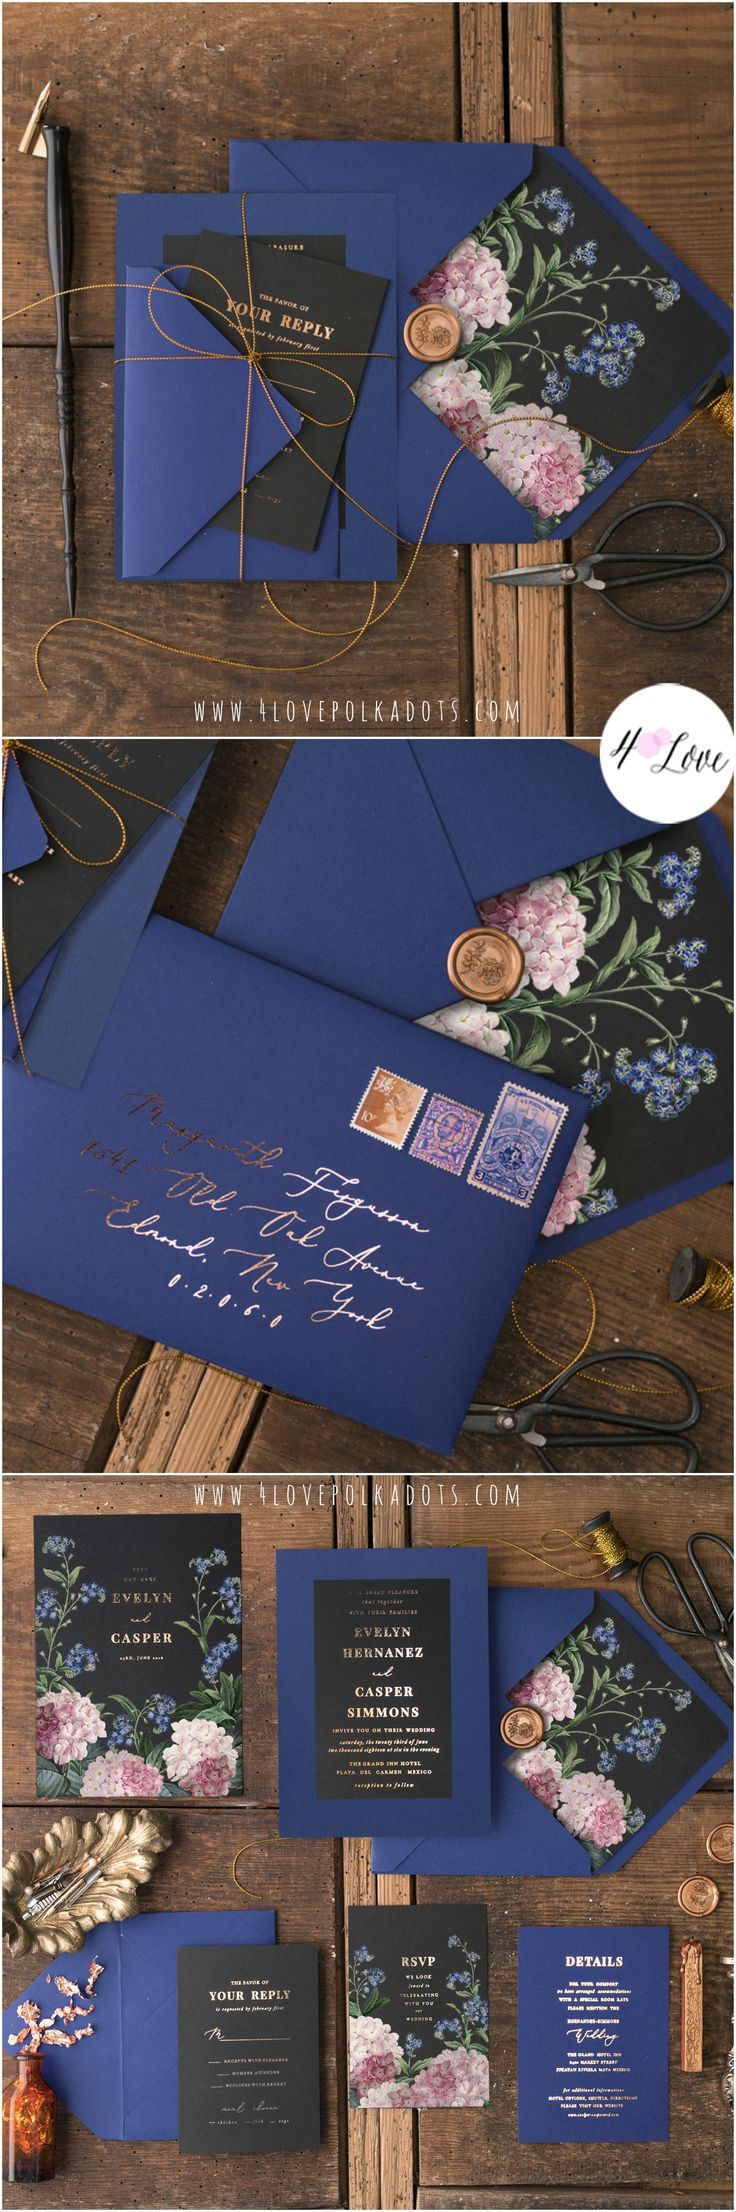 casual evening wedding invitation wording%0A Elegant floral wedding invitations with gold foil calligraphy printing in  Navy  Black  u     Gold color